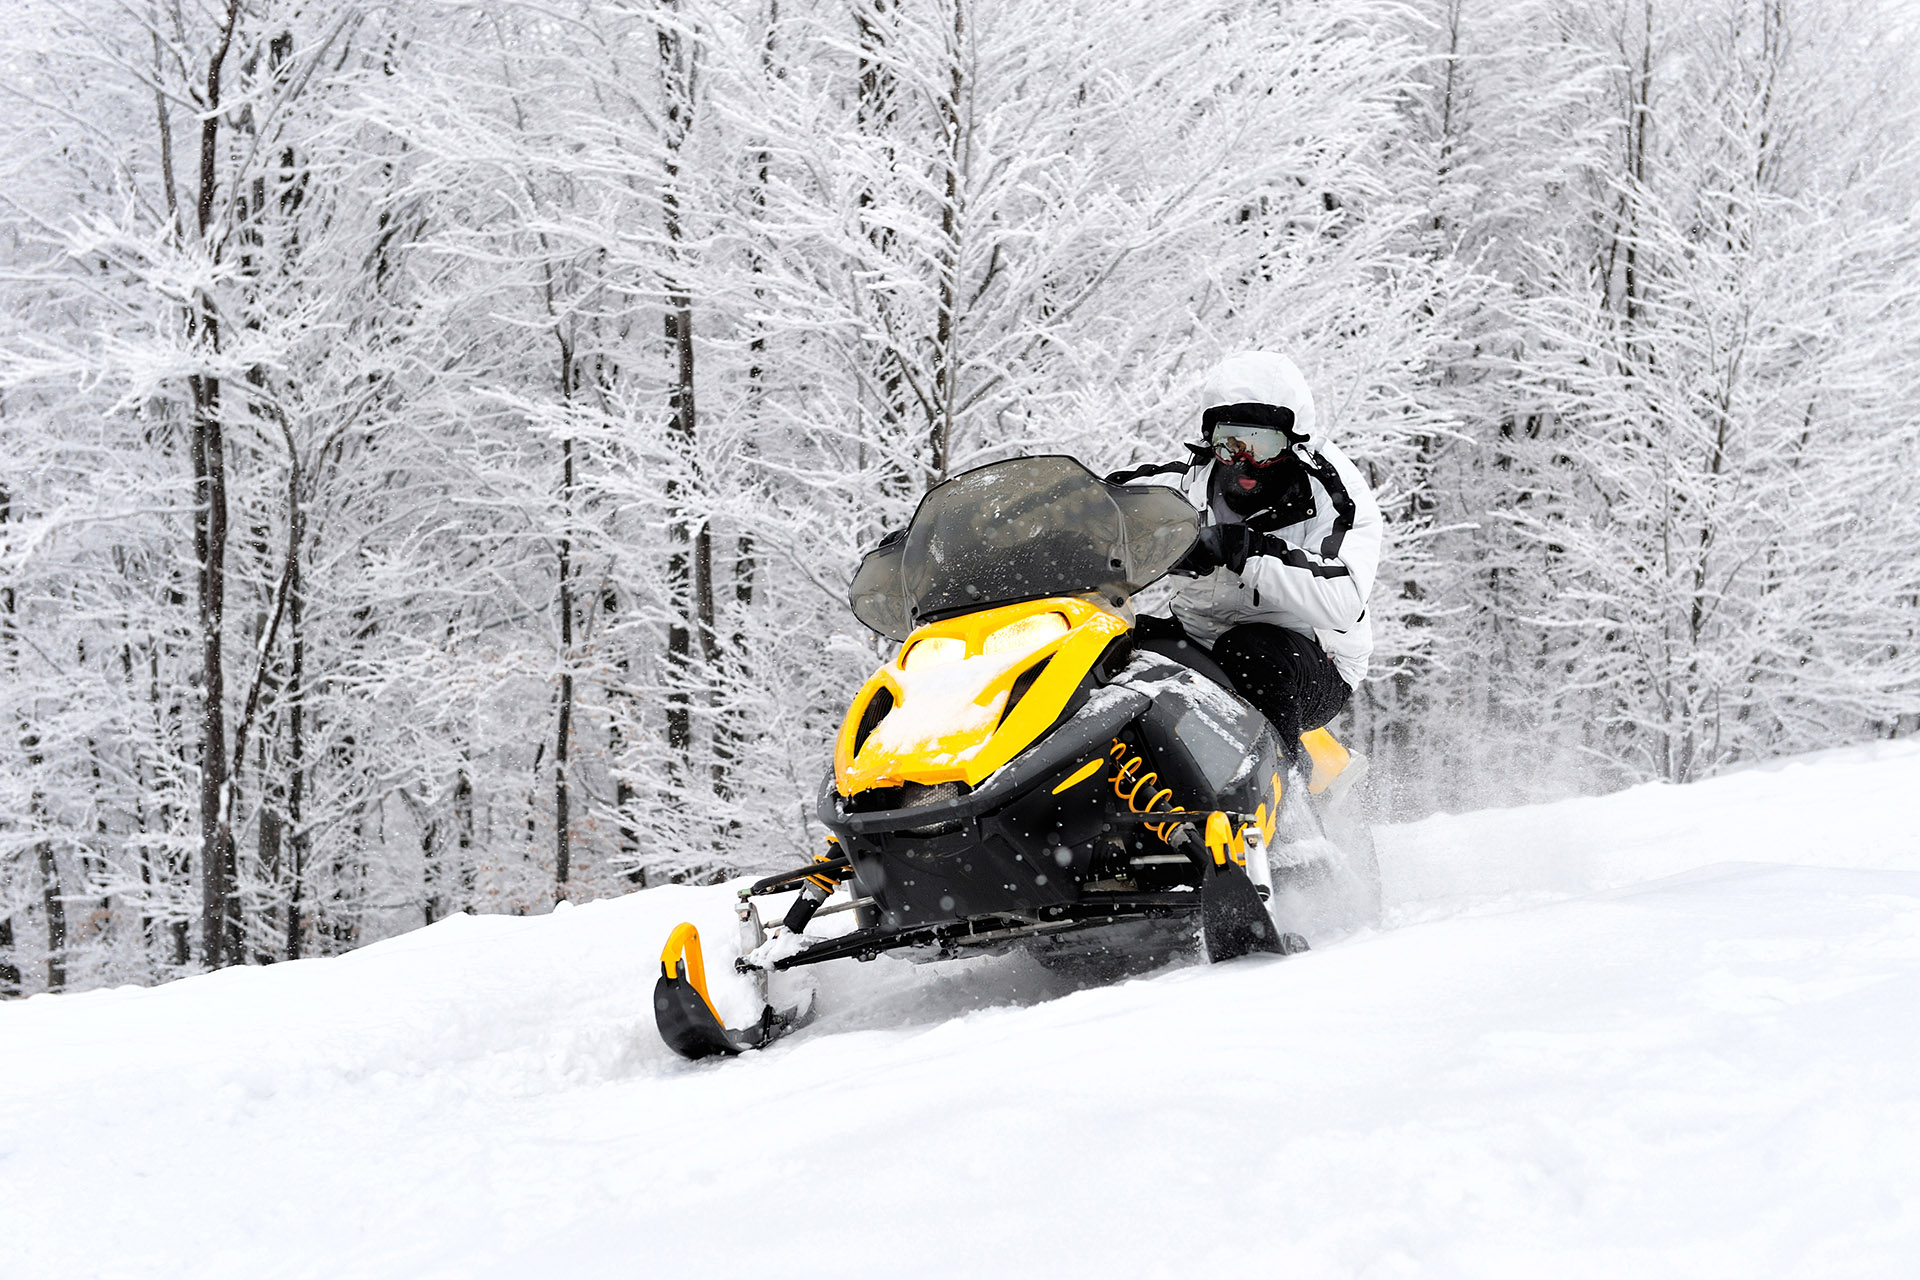 Snowmobile on fresh snow with snow covered trees in background